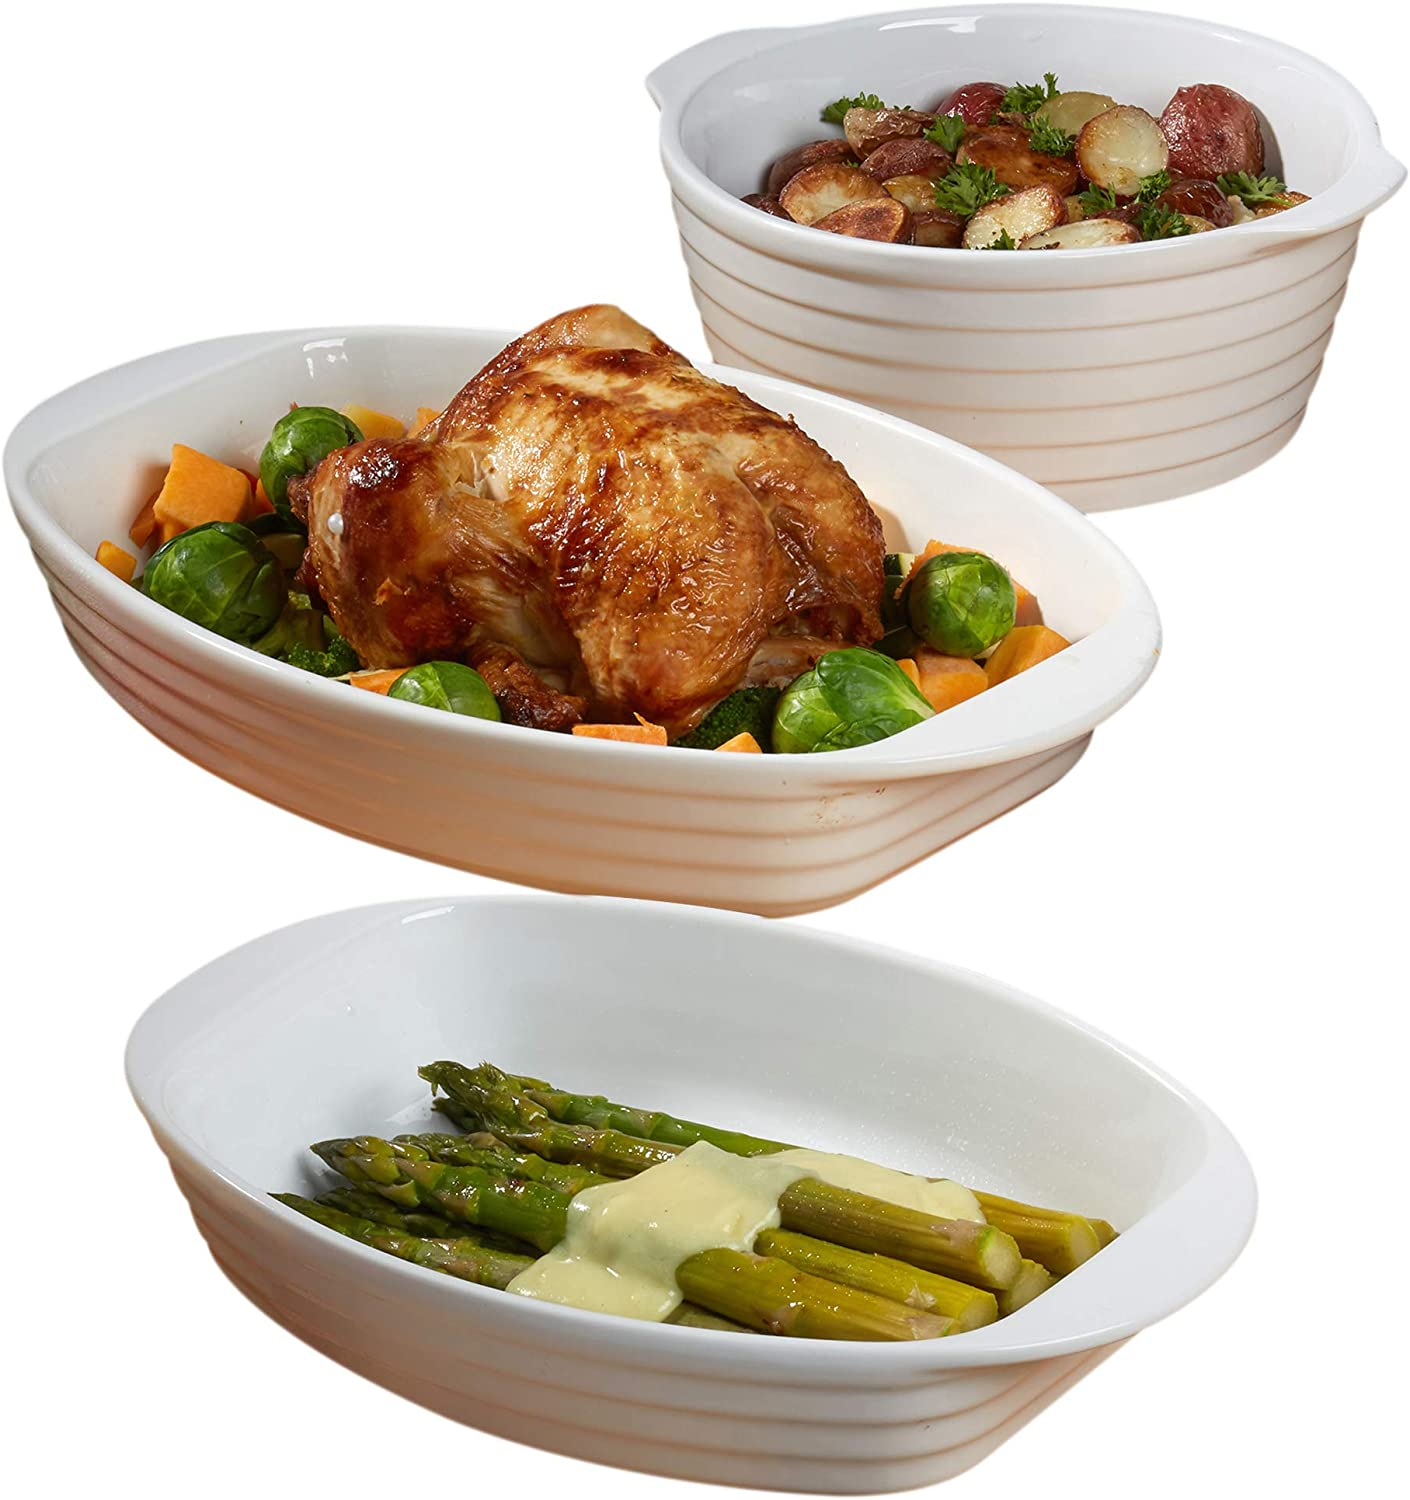 Certified International 3 Piece Set Cookware, Bakeware, Cooking Accessories, White